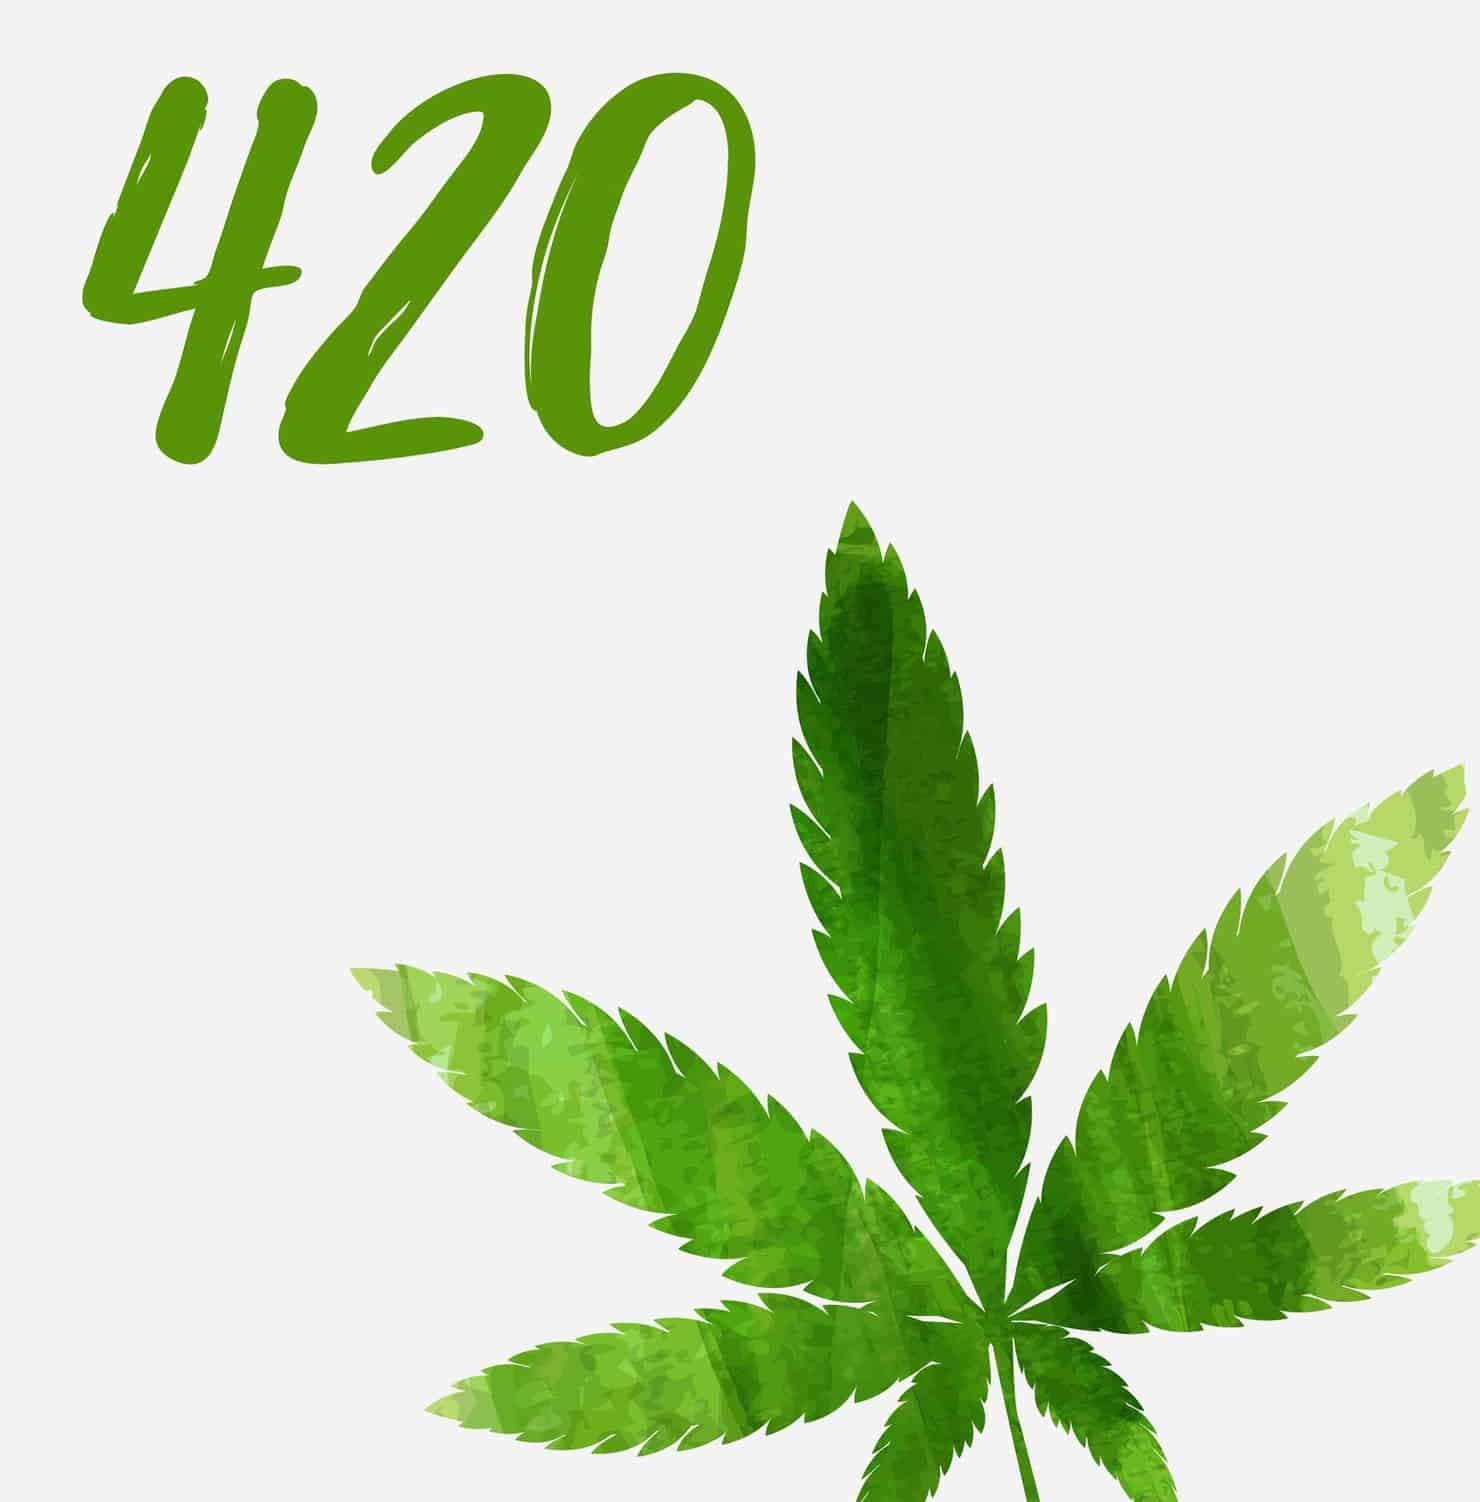 National 4/20 Day: How It Began